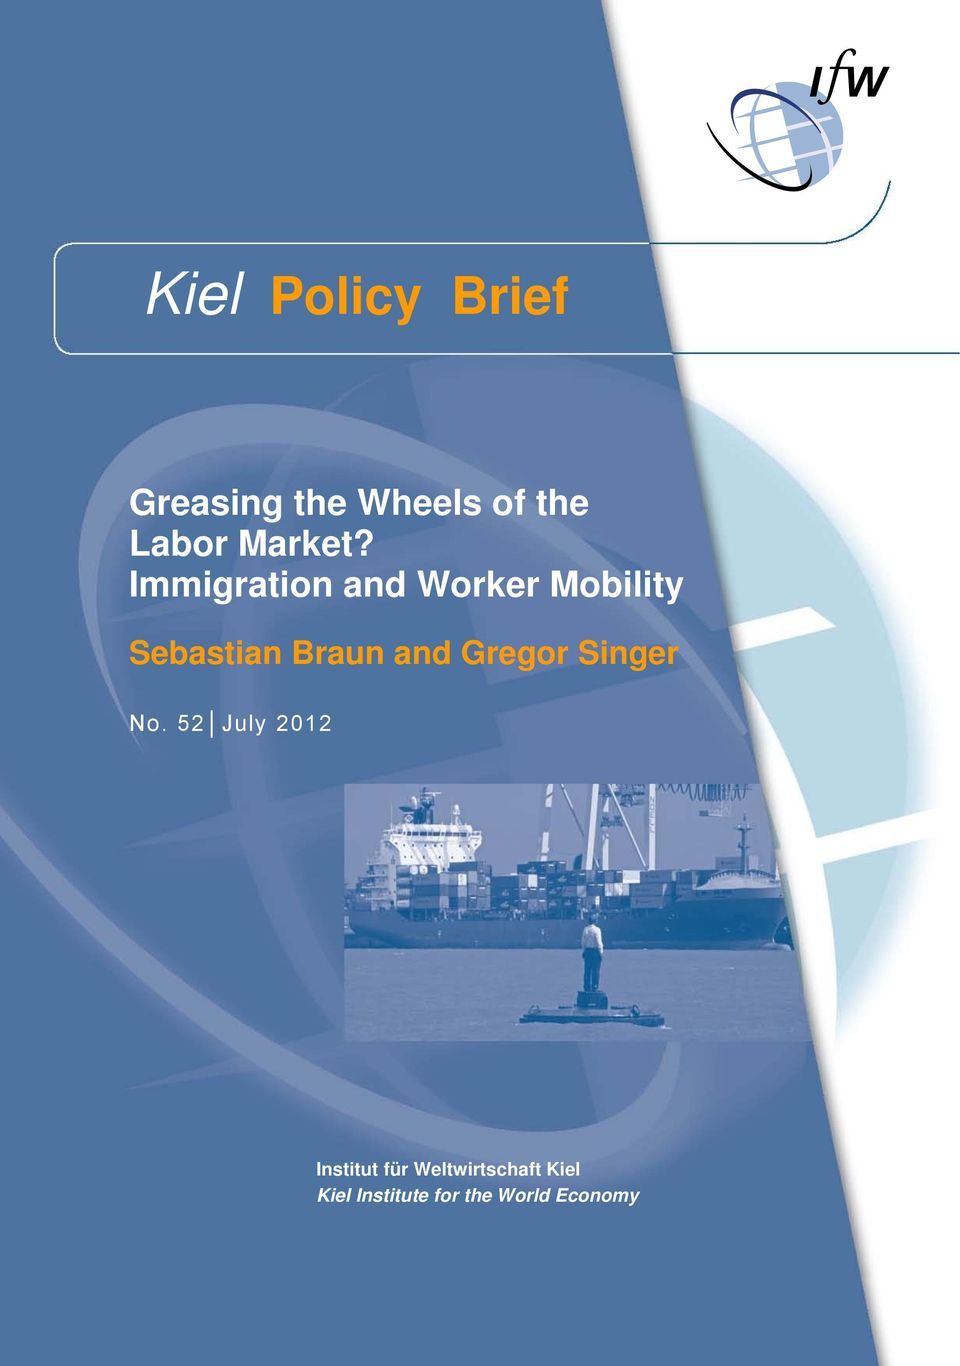 Immigration and Worker Mobility Sebastian Braun and